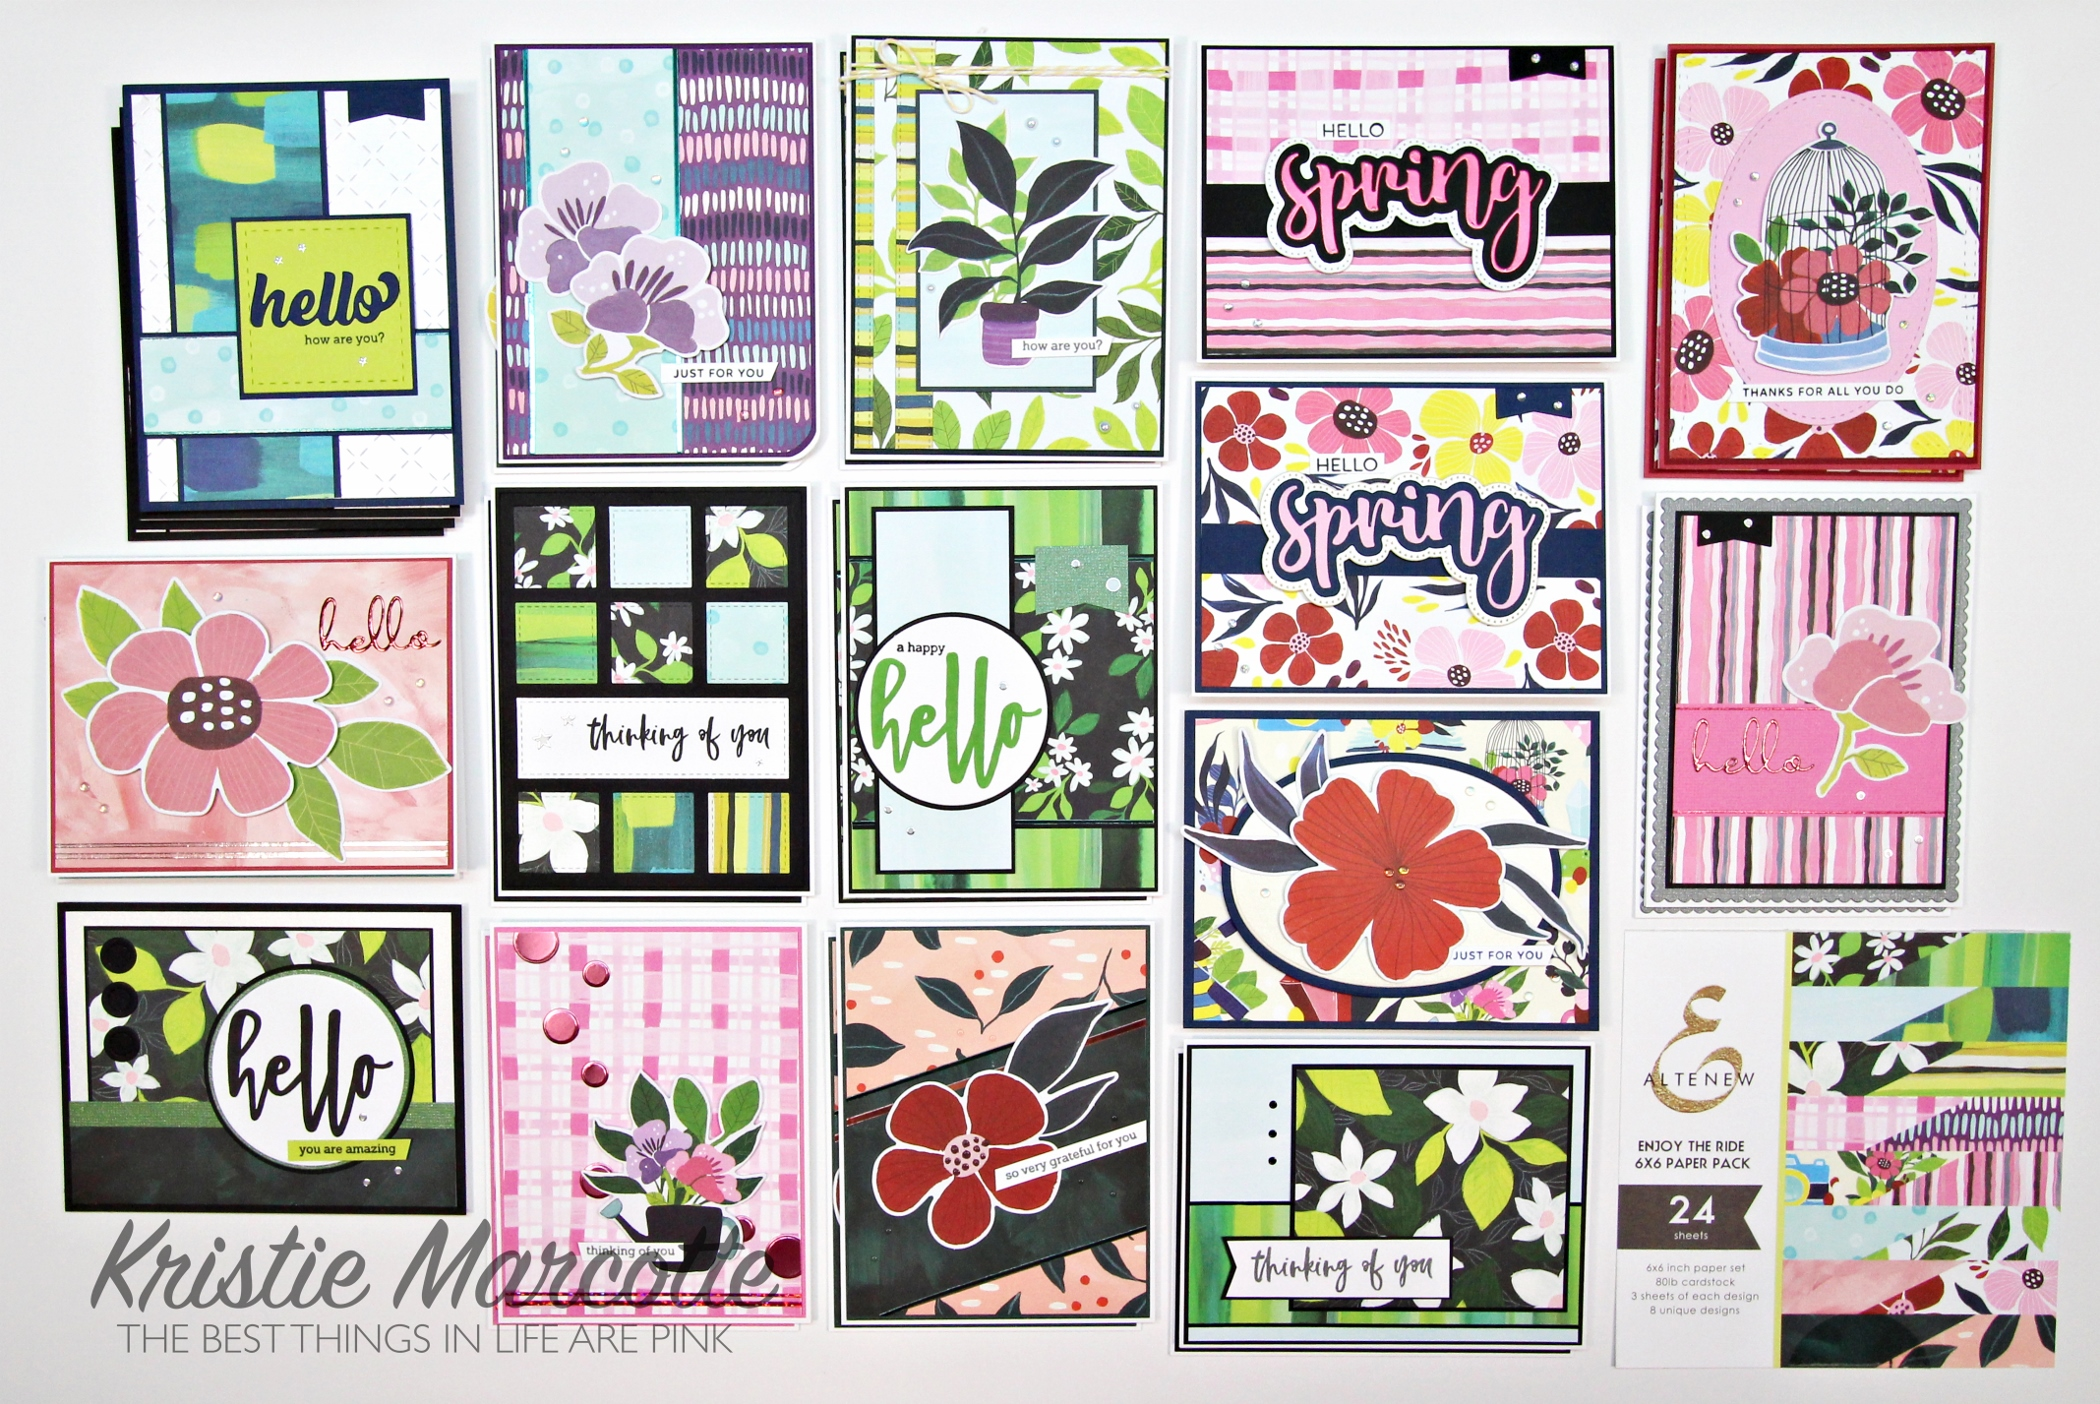 Altenew – Enjoy the Ride – 28 cards from one 6×6 paper pad